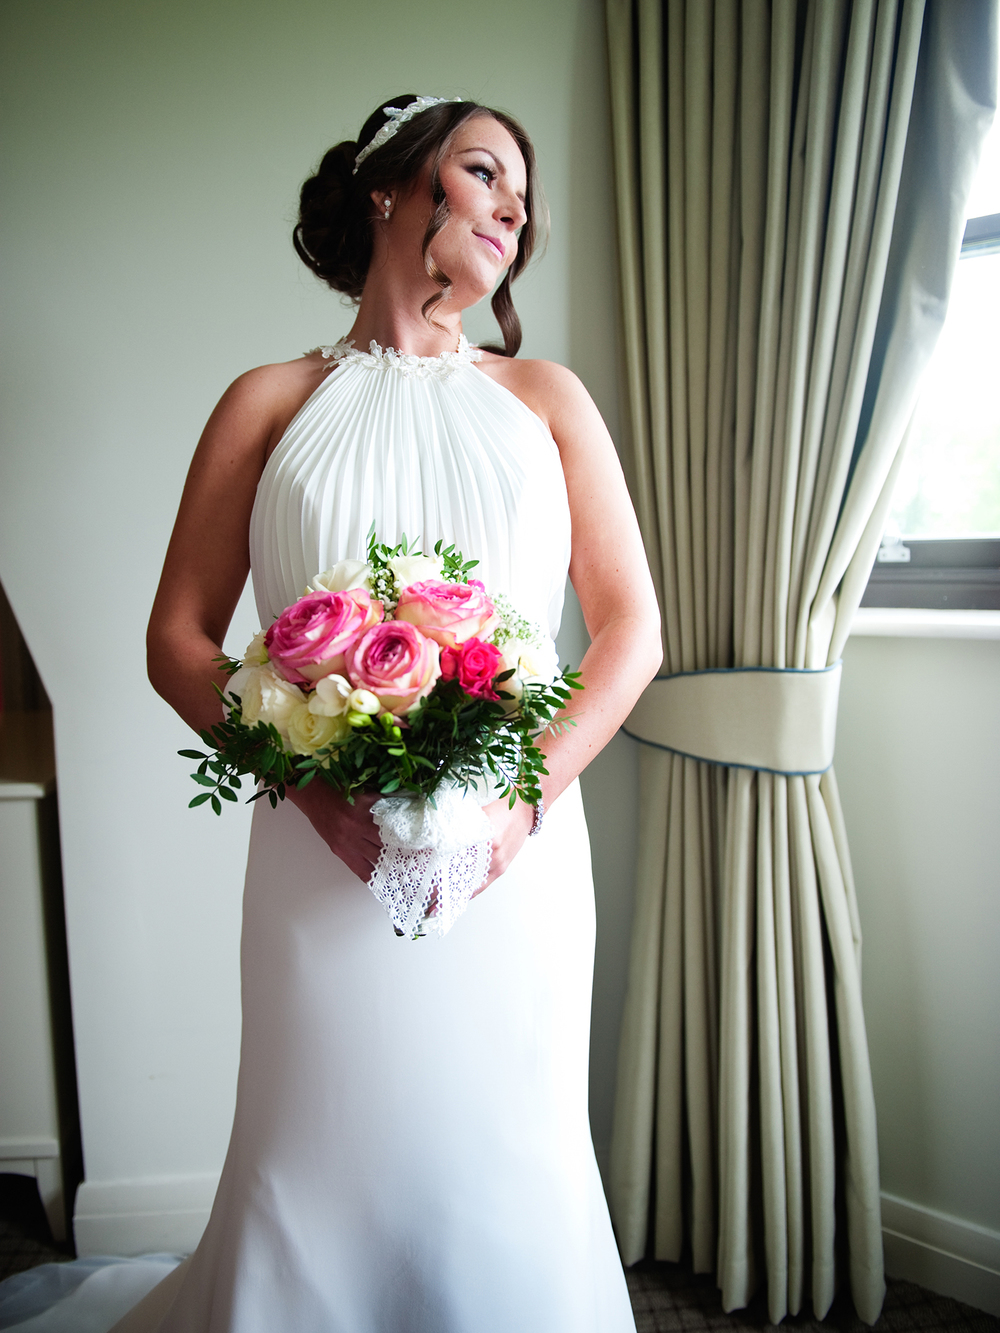 rookery-hall-wedding-weekday-wedding-photos-pink-wedding-details-cheshire-wedding (10)